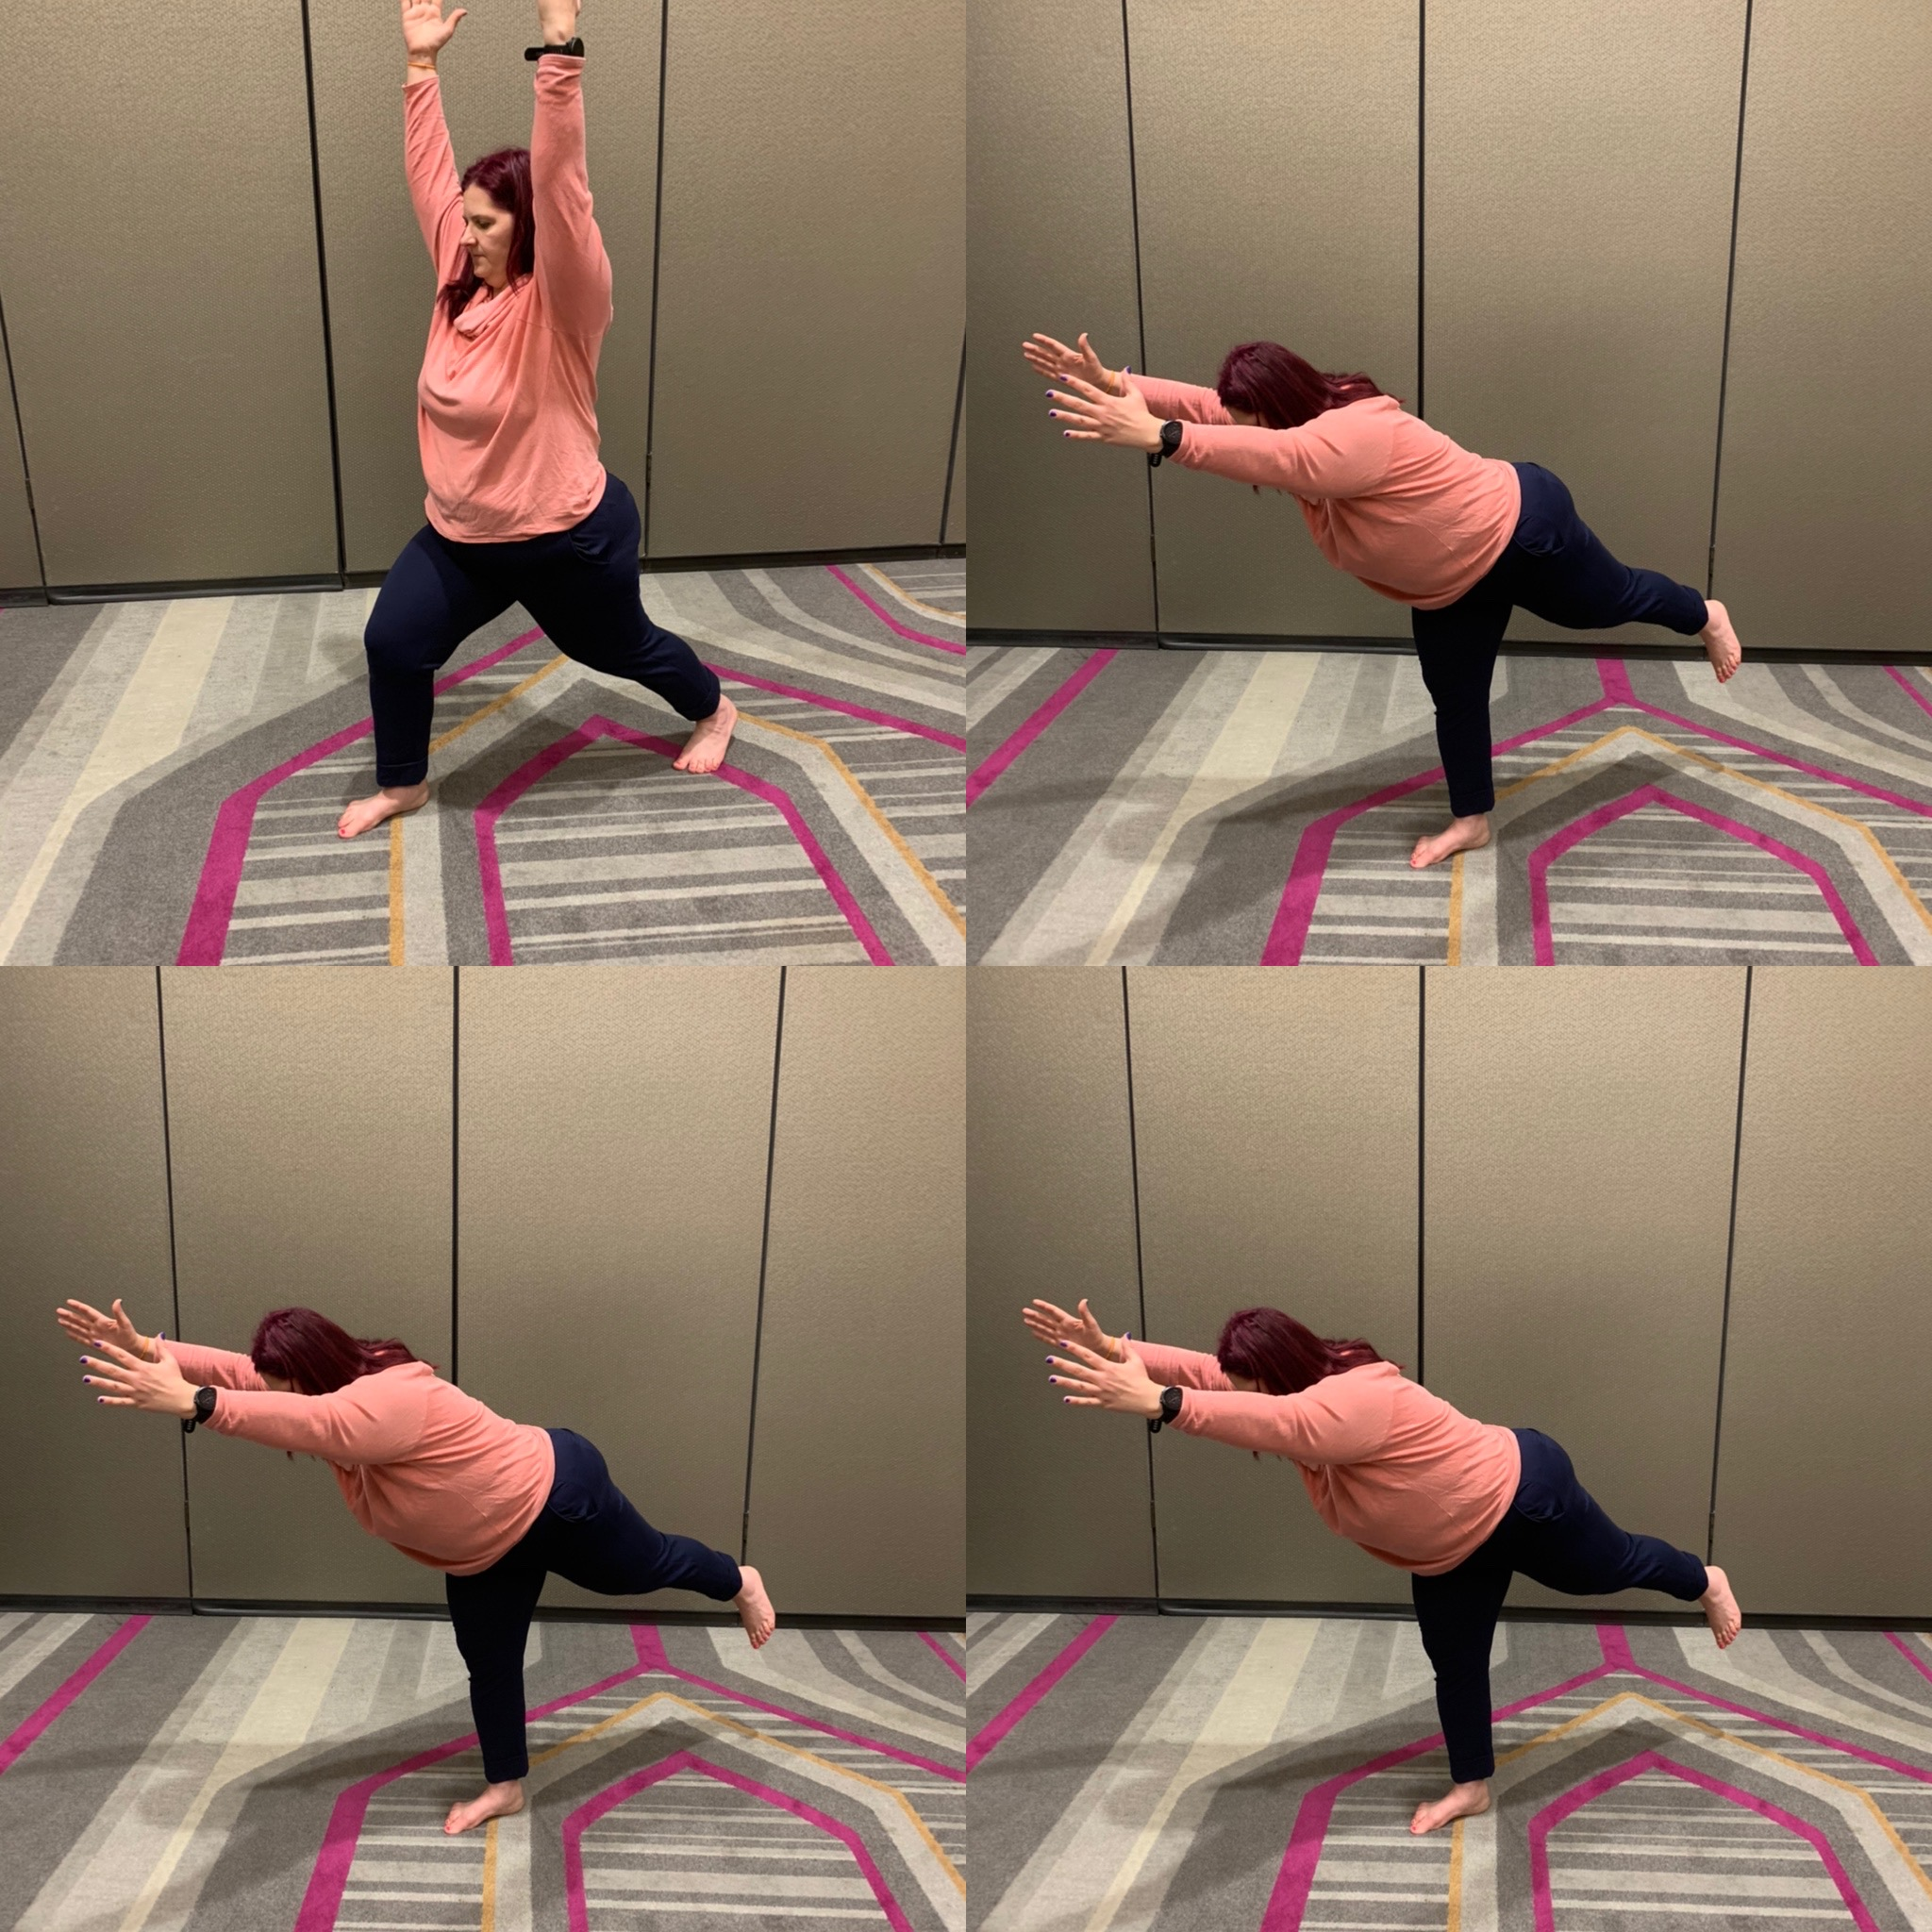 Nicole moving from yoga poses high crescent lunge to Warrior 3